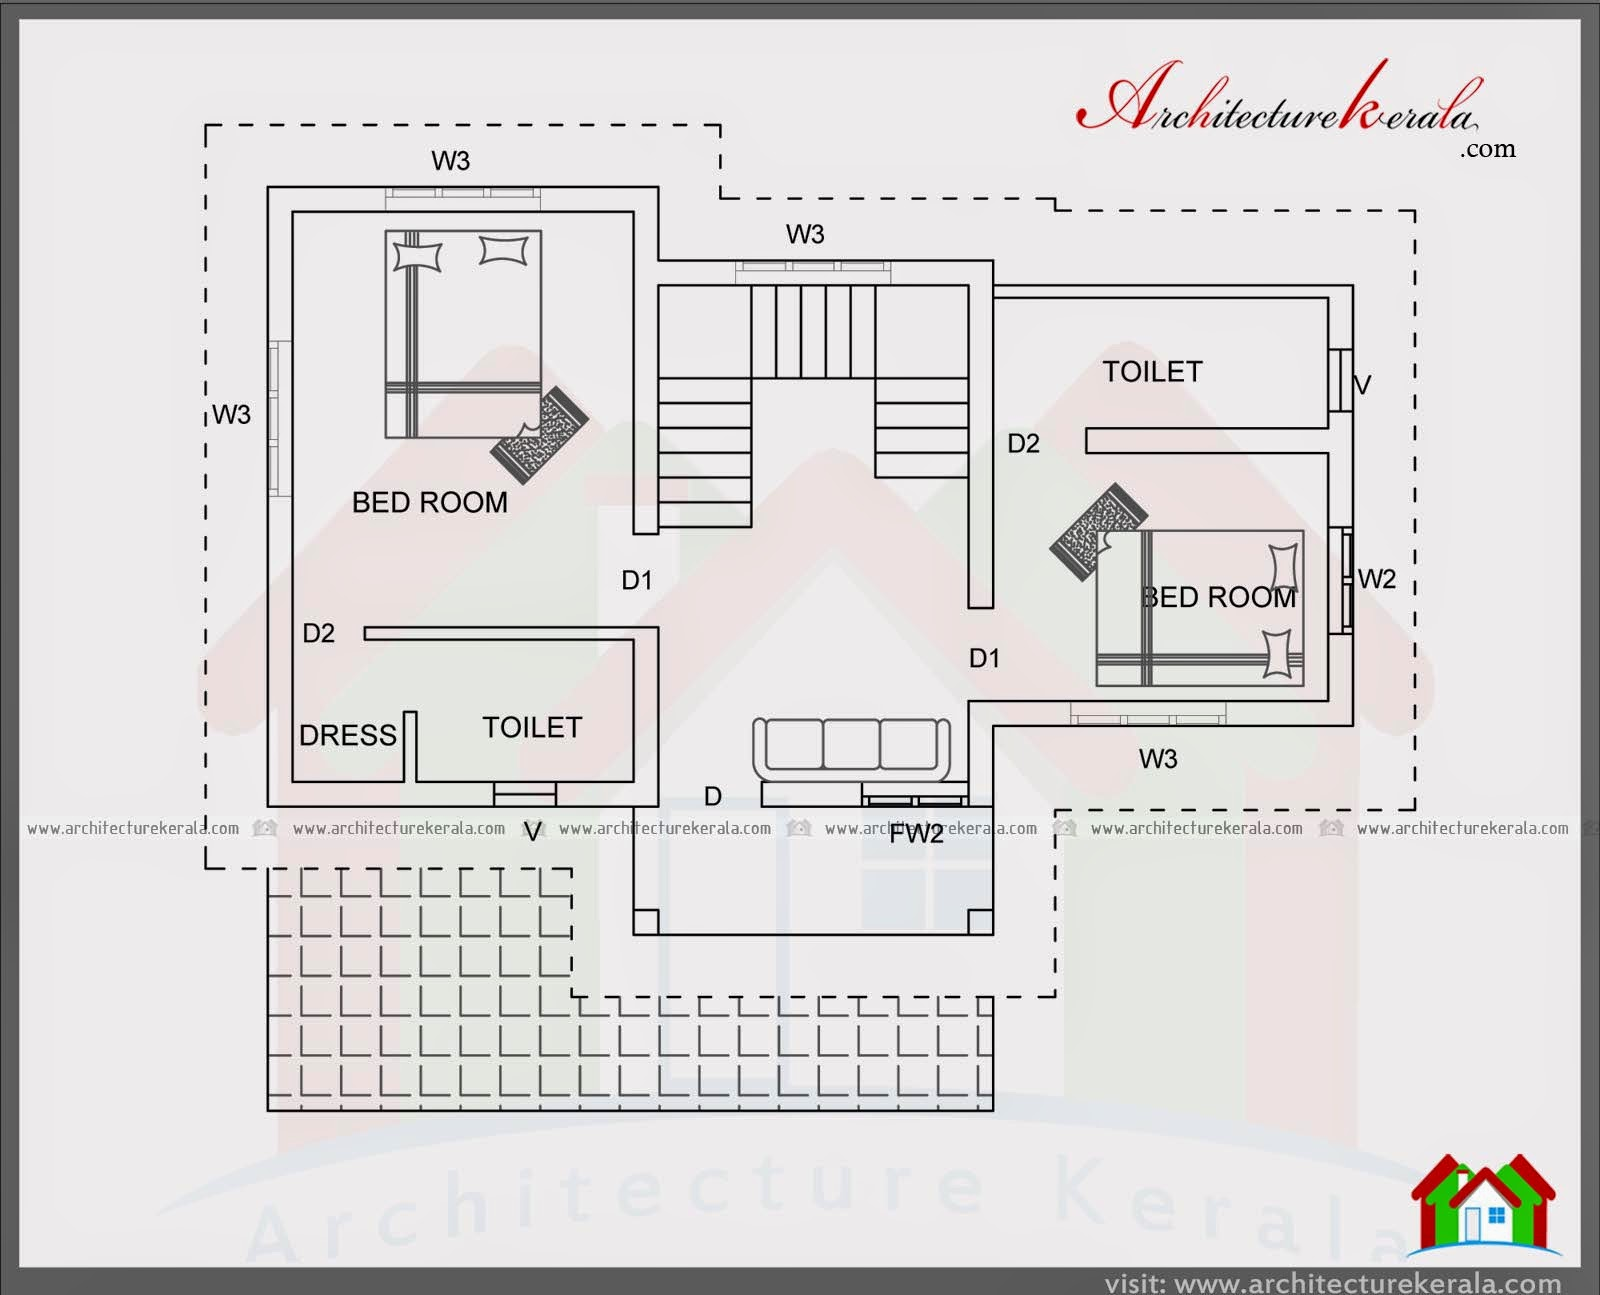 Superb First Floor Plan. 4 Bedroom House Plan In 1400 Square Feet Architecture  Kerala